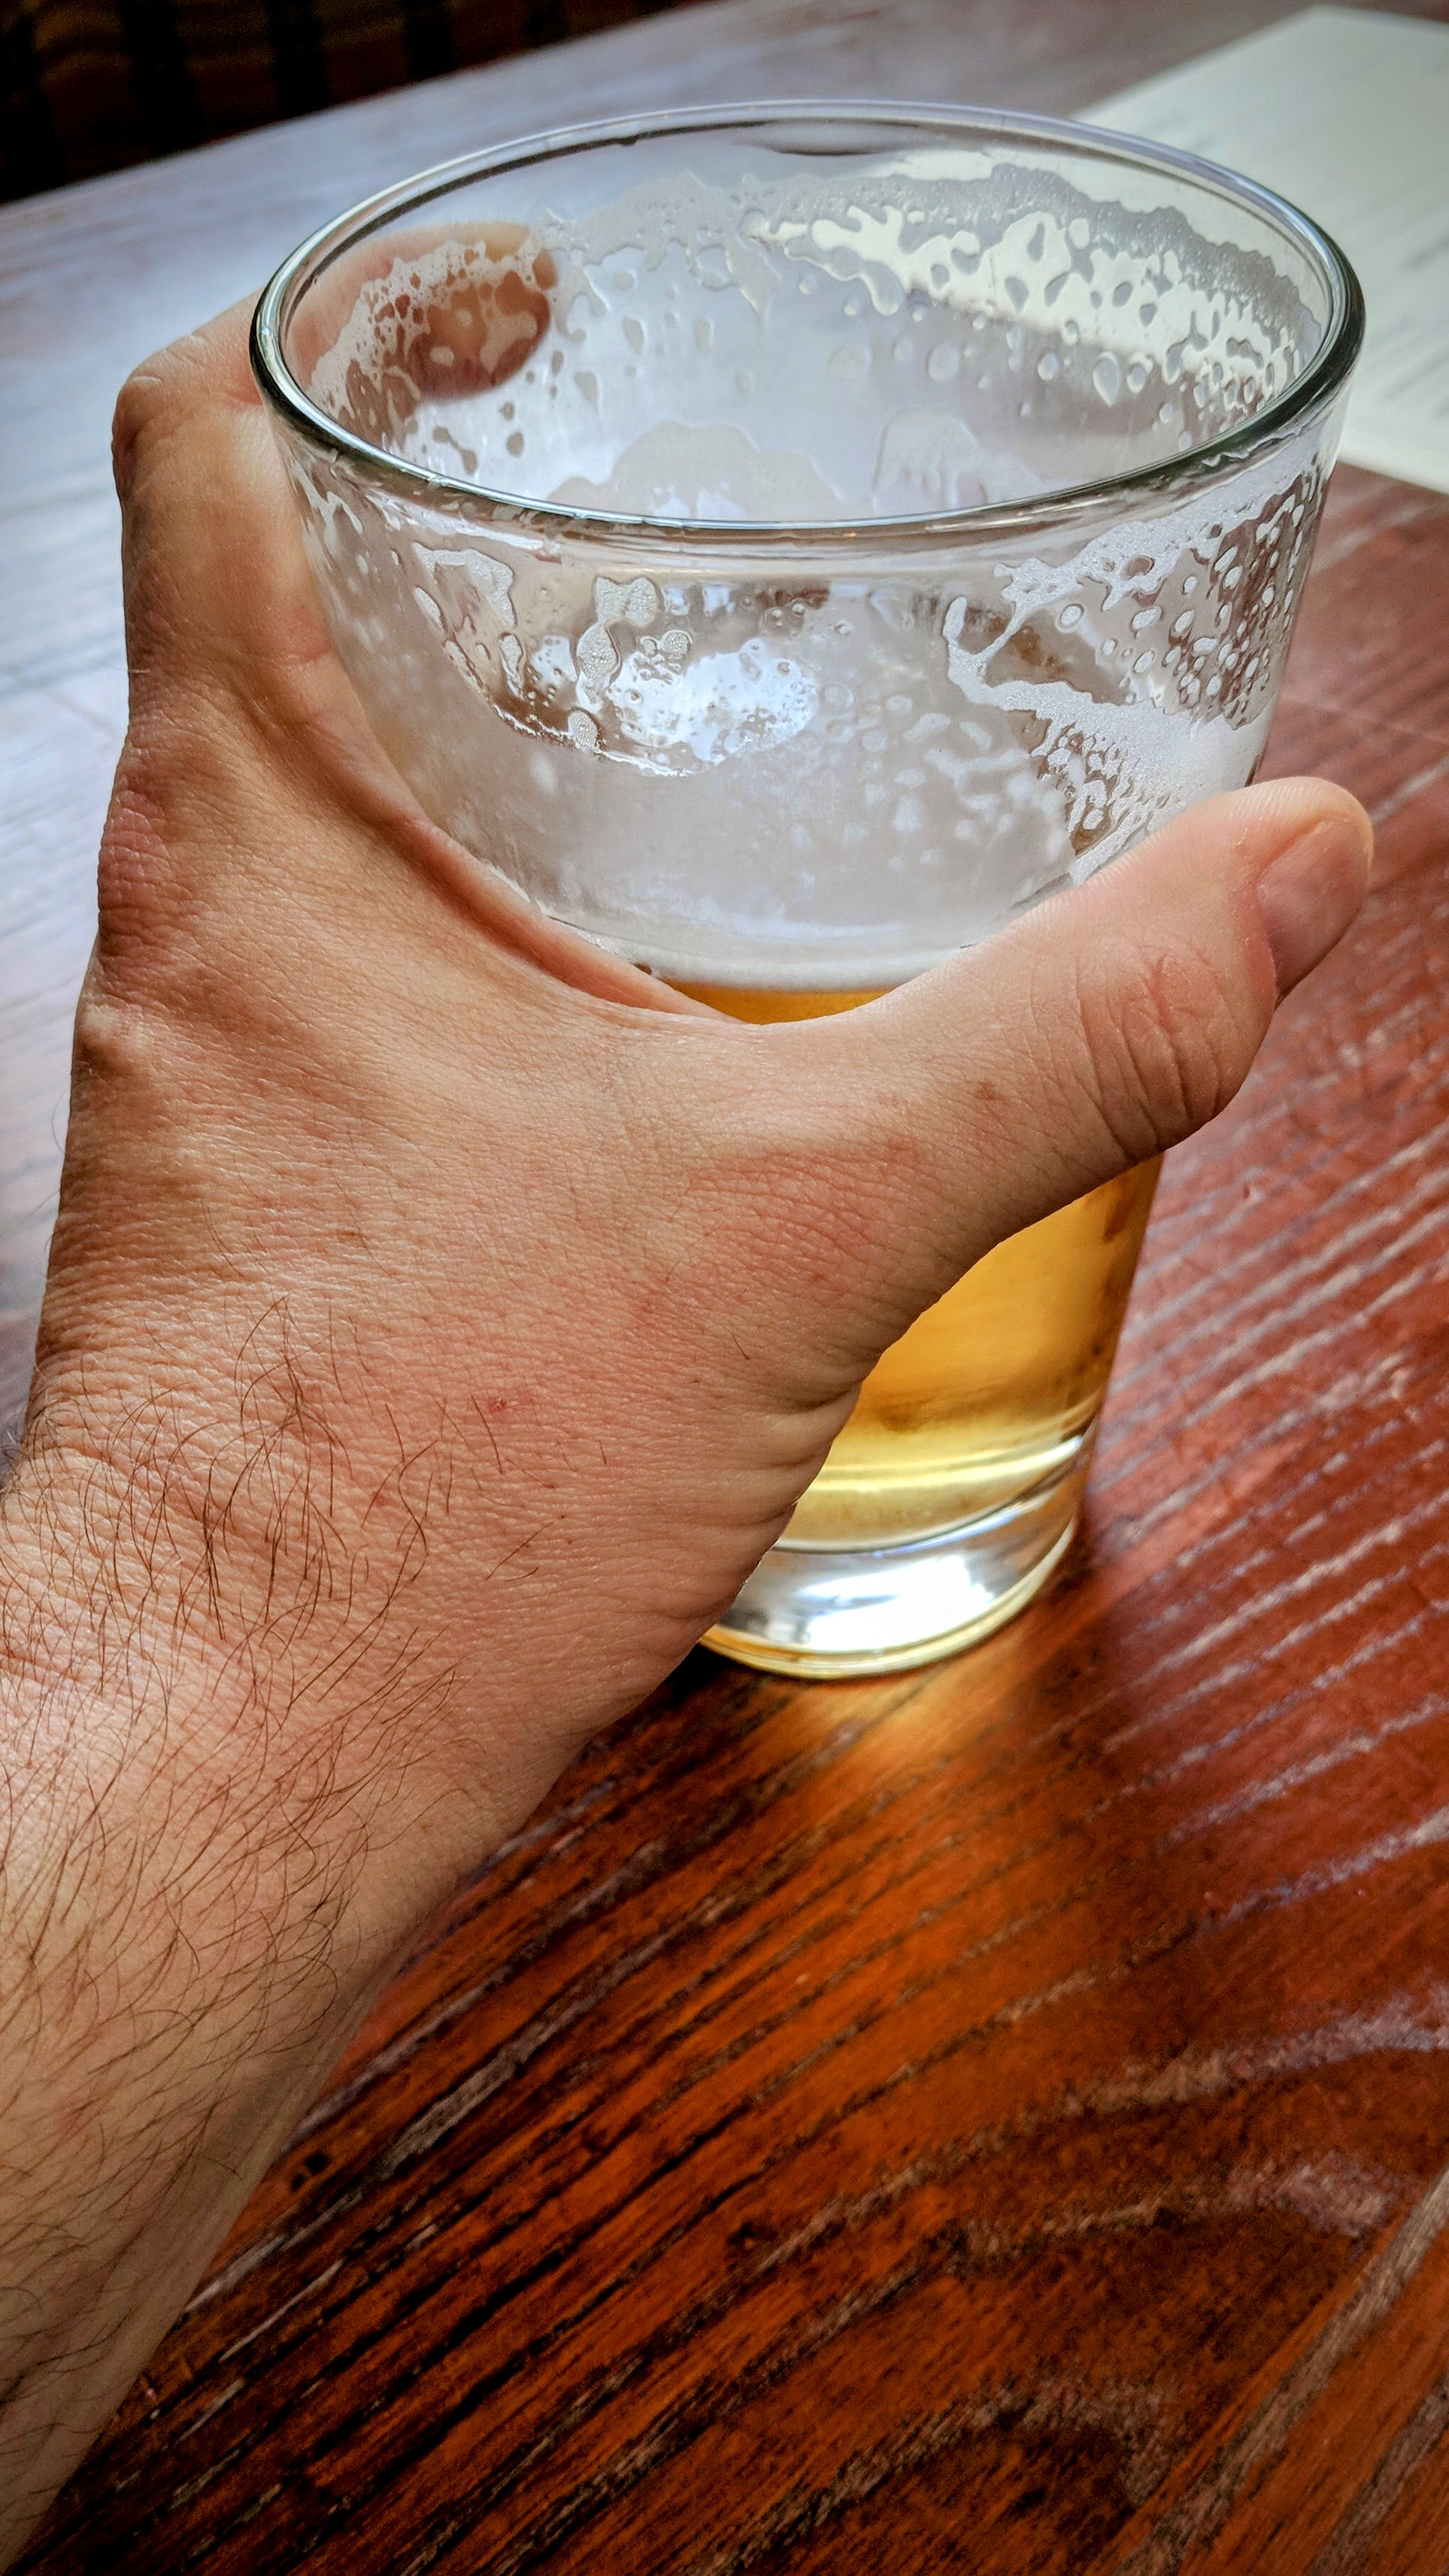 Reaching For The Pint